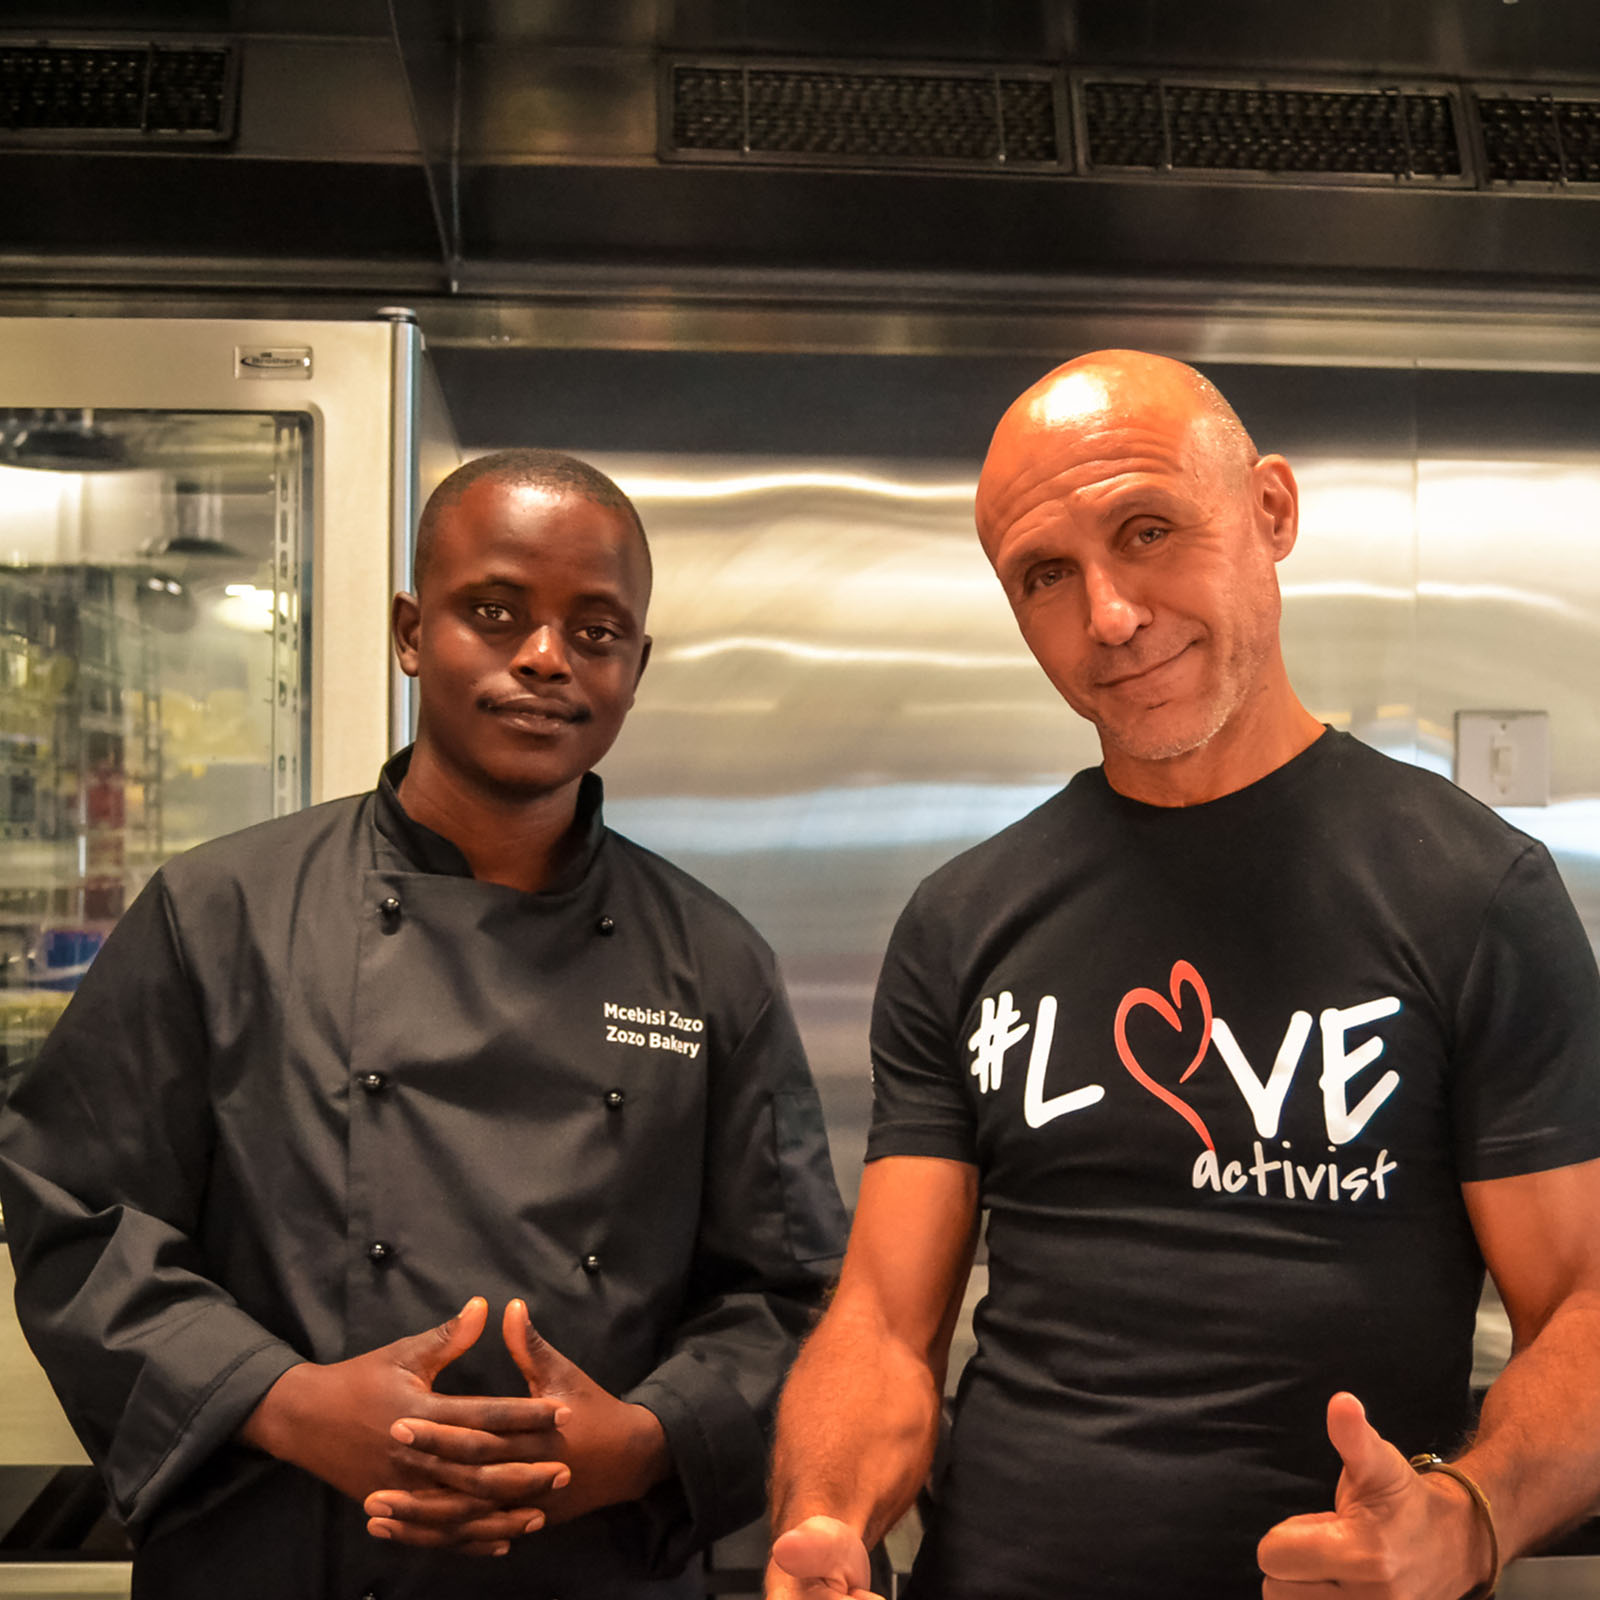 Danny, Ladles of Love founder, standing with young food entrepreneur and baker, Mcebisi in a kitchen.